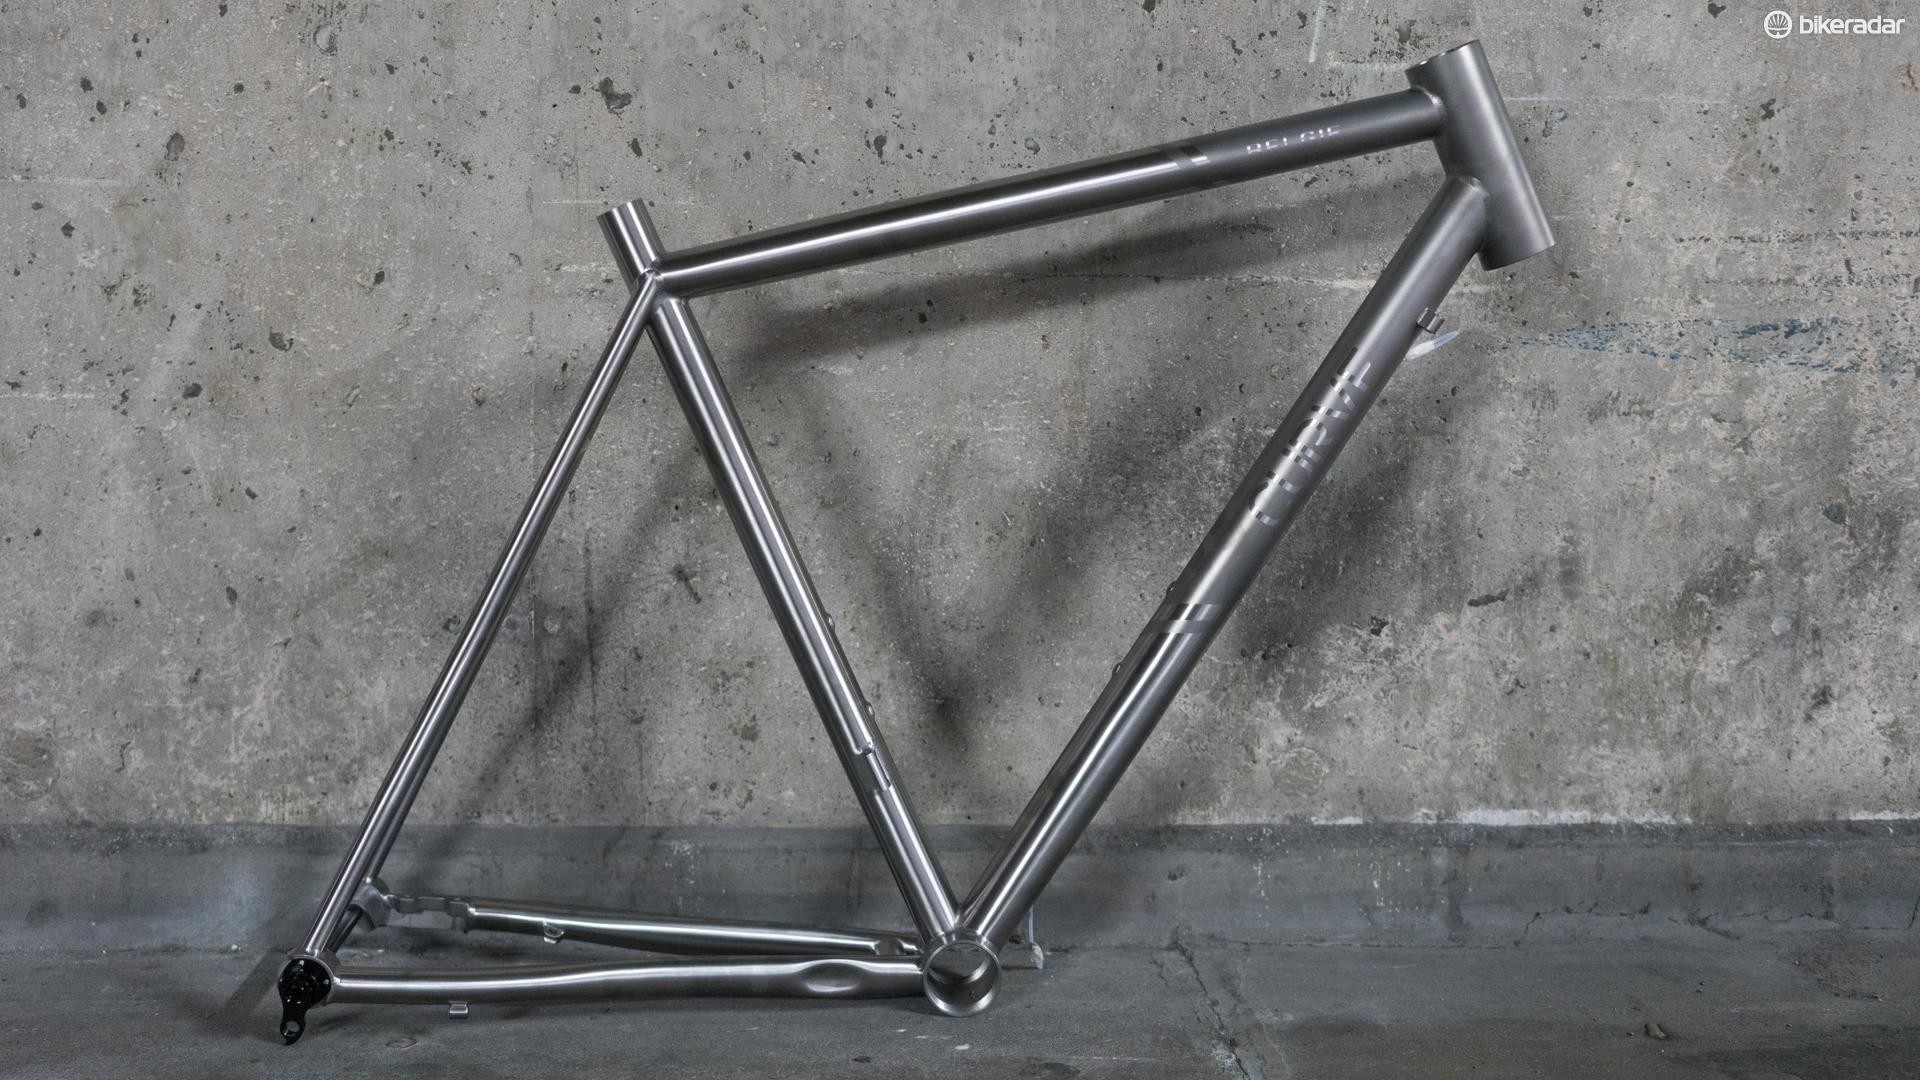 Curve's Belgie Disc titanium frame is unpainted for that full titanium experience, although the brand does offer custom paint options